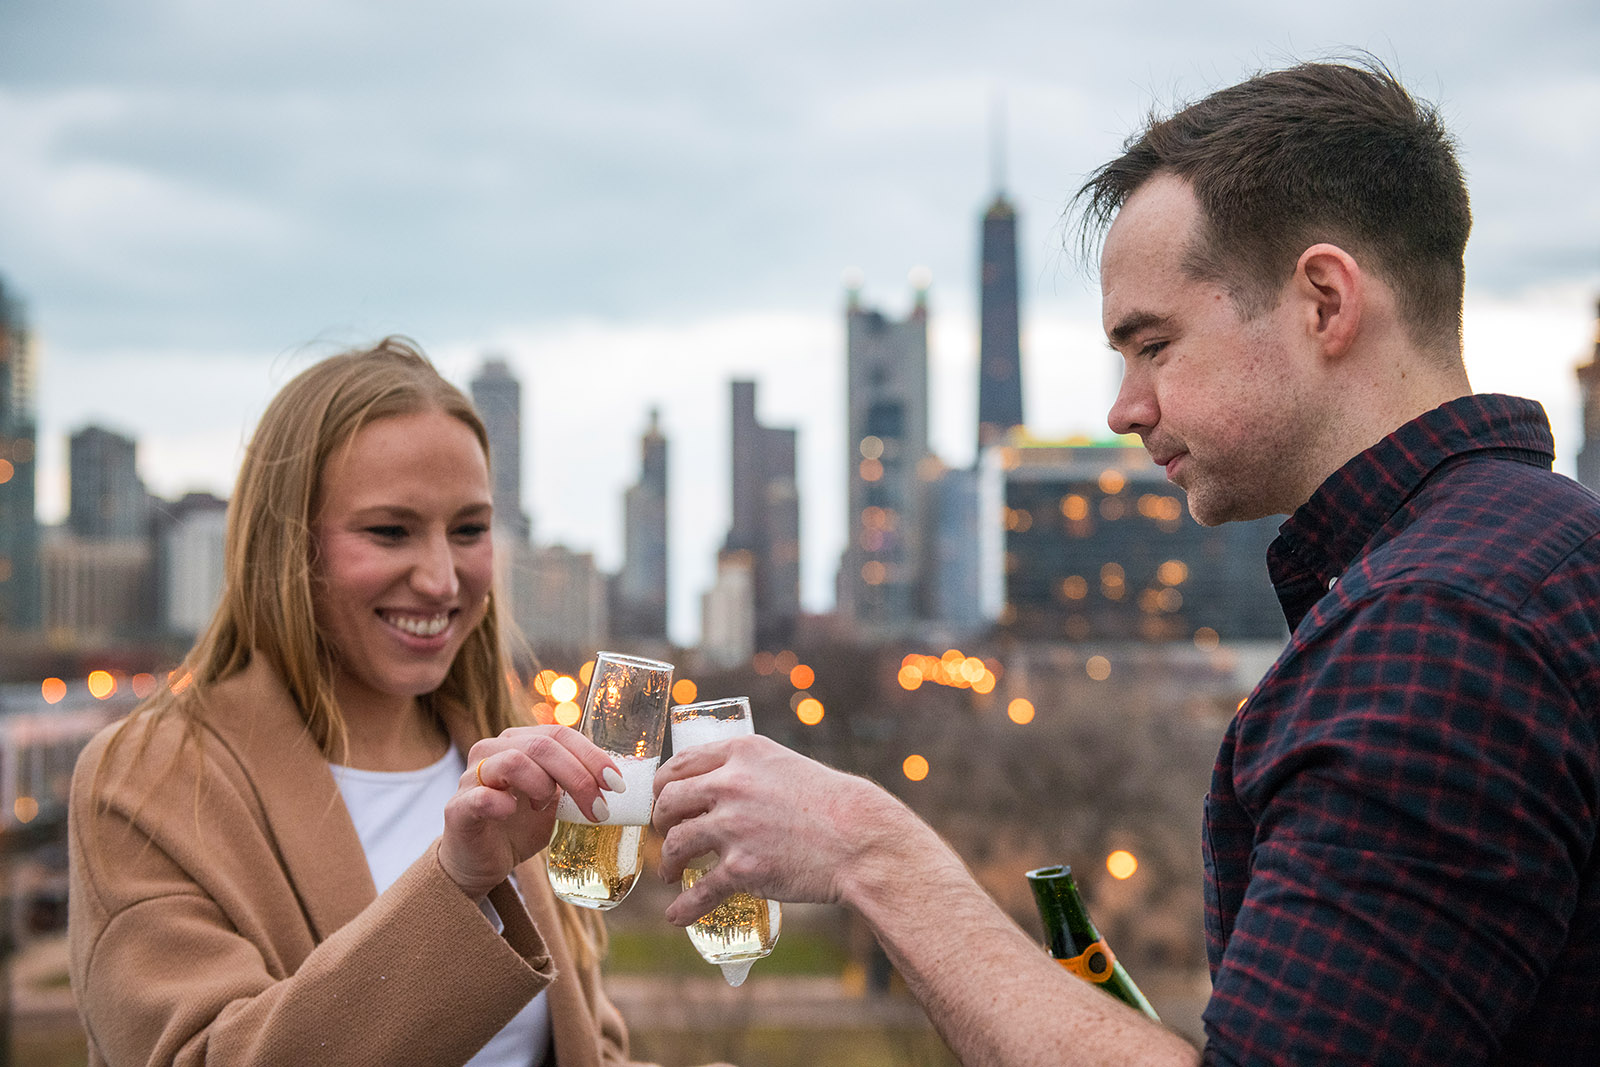 Chicago_Rooftop_Proposal26